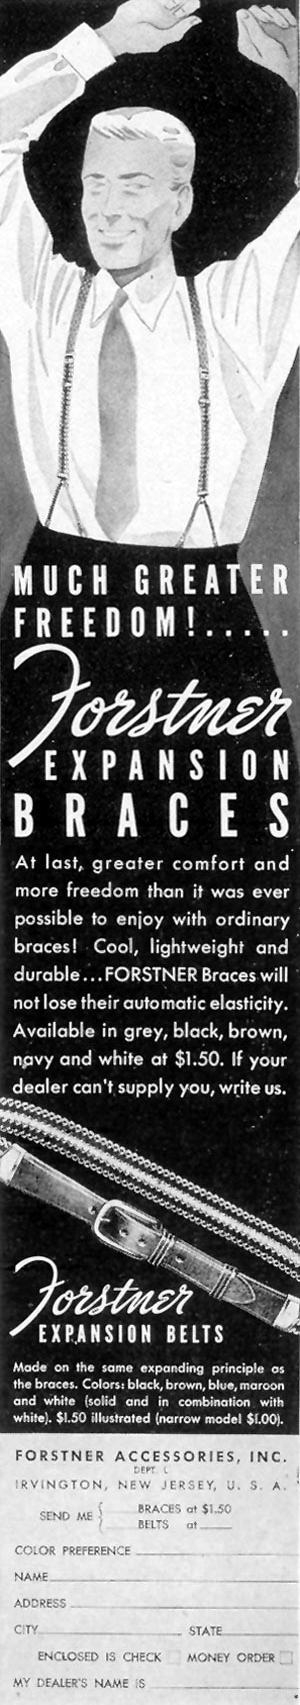 FORSTNER EXPLANSION BRACES LIFE 09/20/1937 p. 99